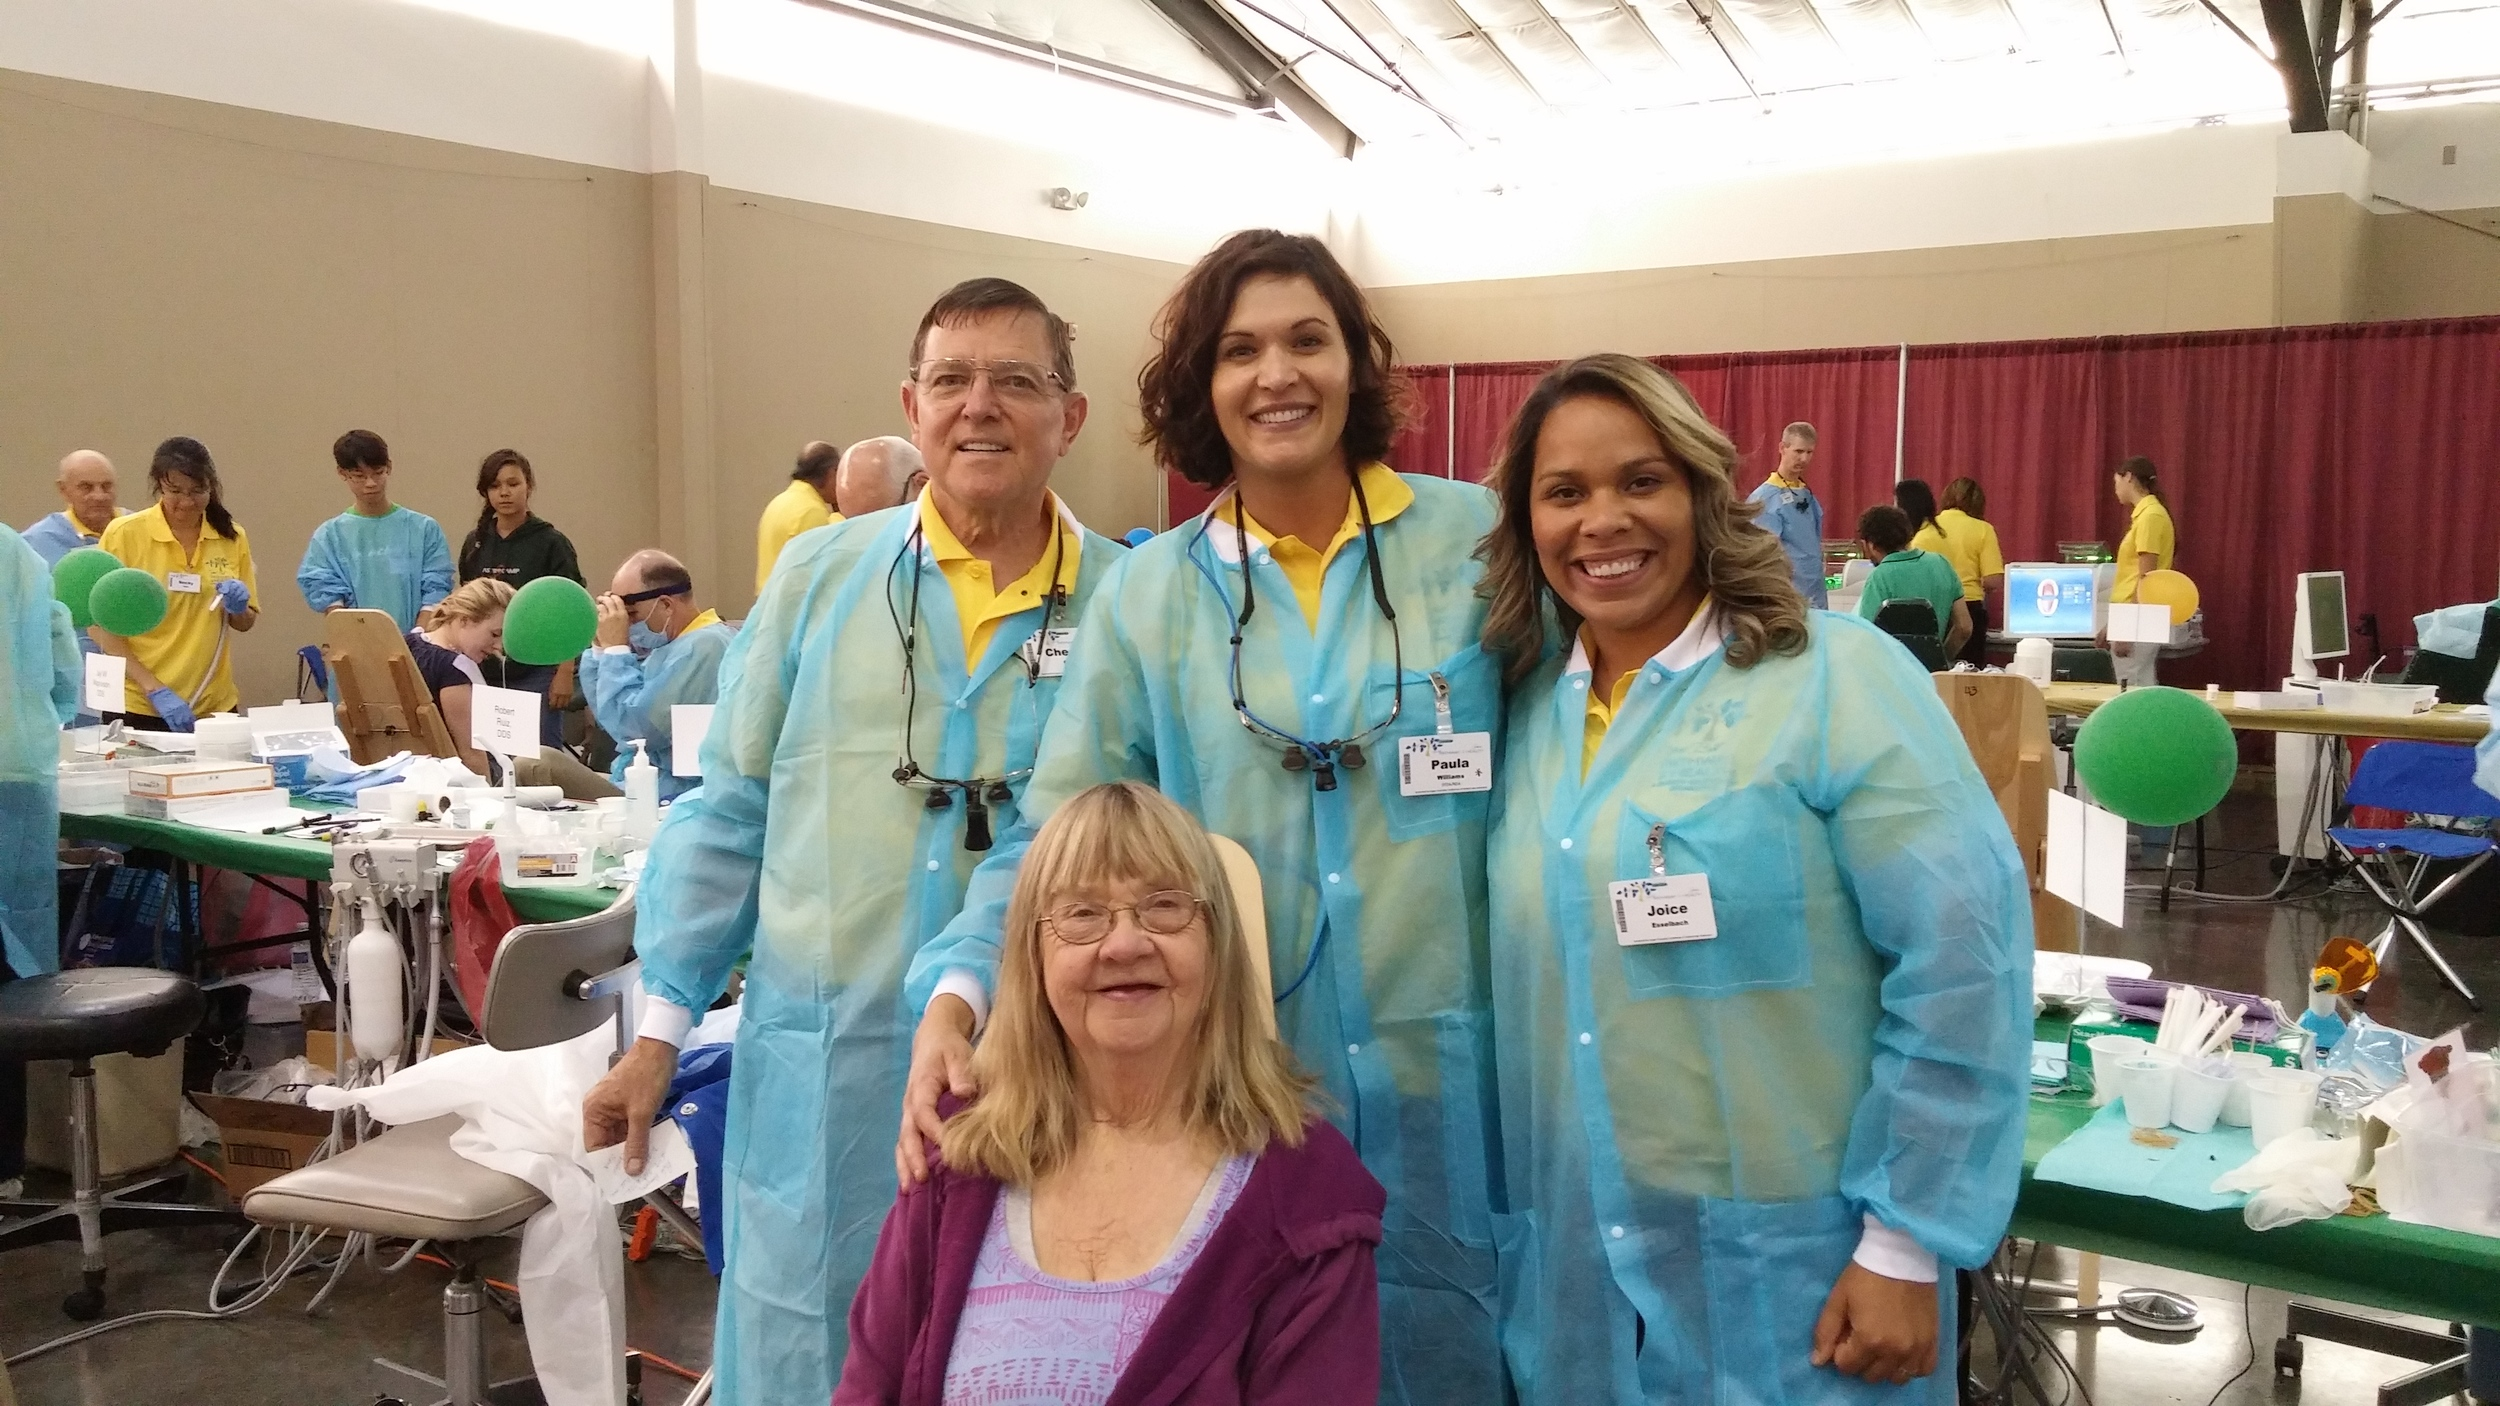 Volunteers and one happy patient at Pathway to Health 2015.